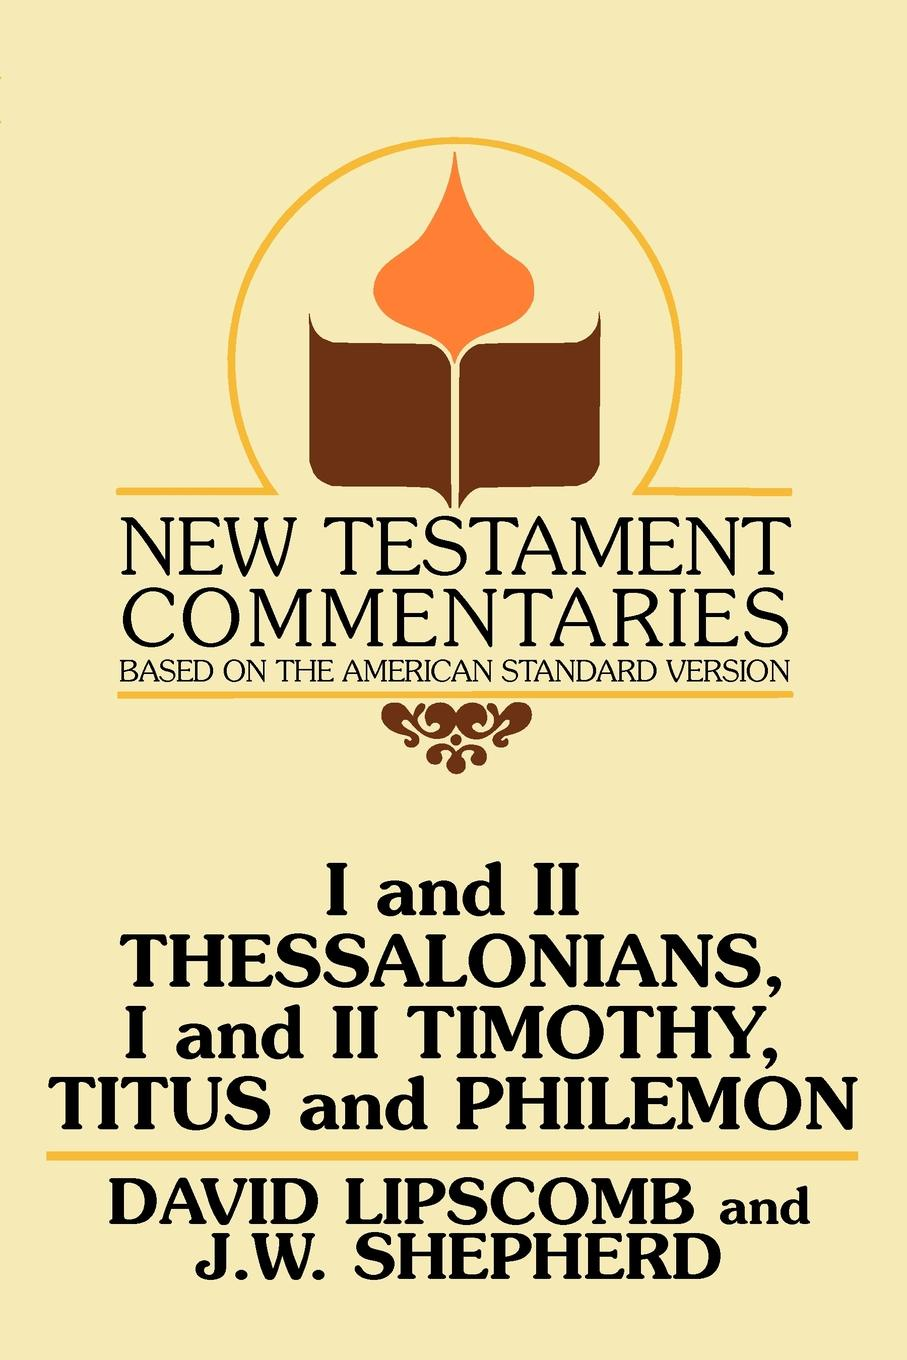 David Lipscomb I and II Thessalonians, Timothy, Titus Philemon. A Commentary on the New Testament Epistles